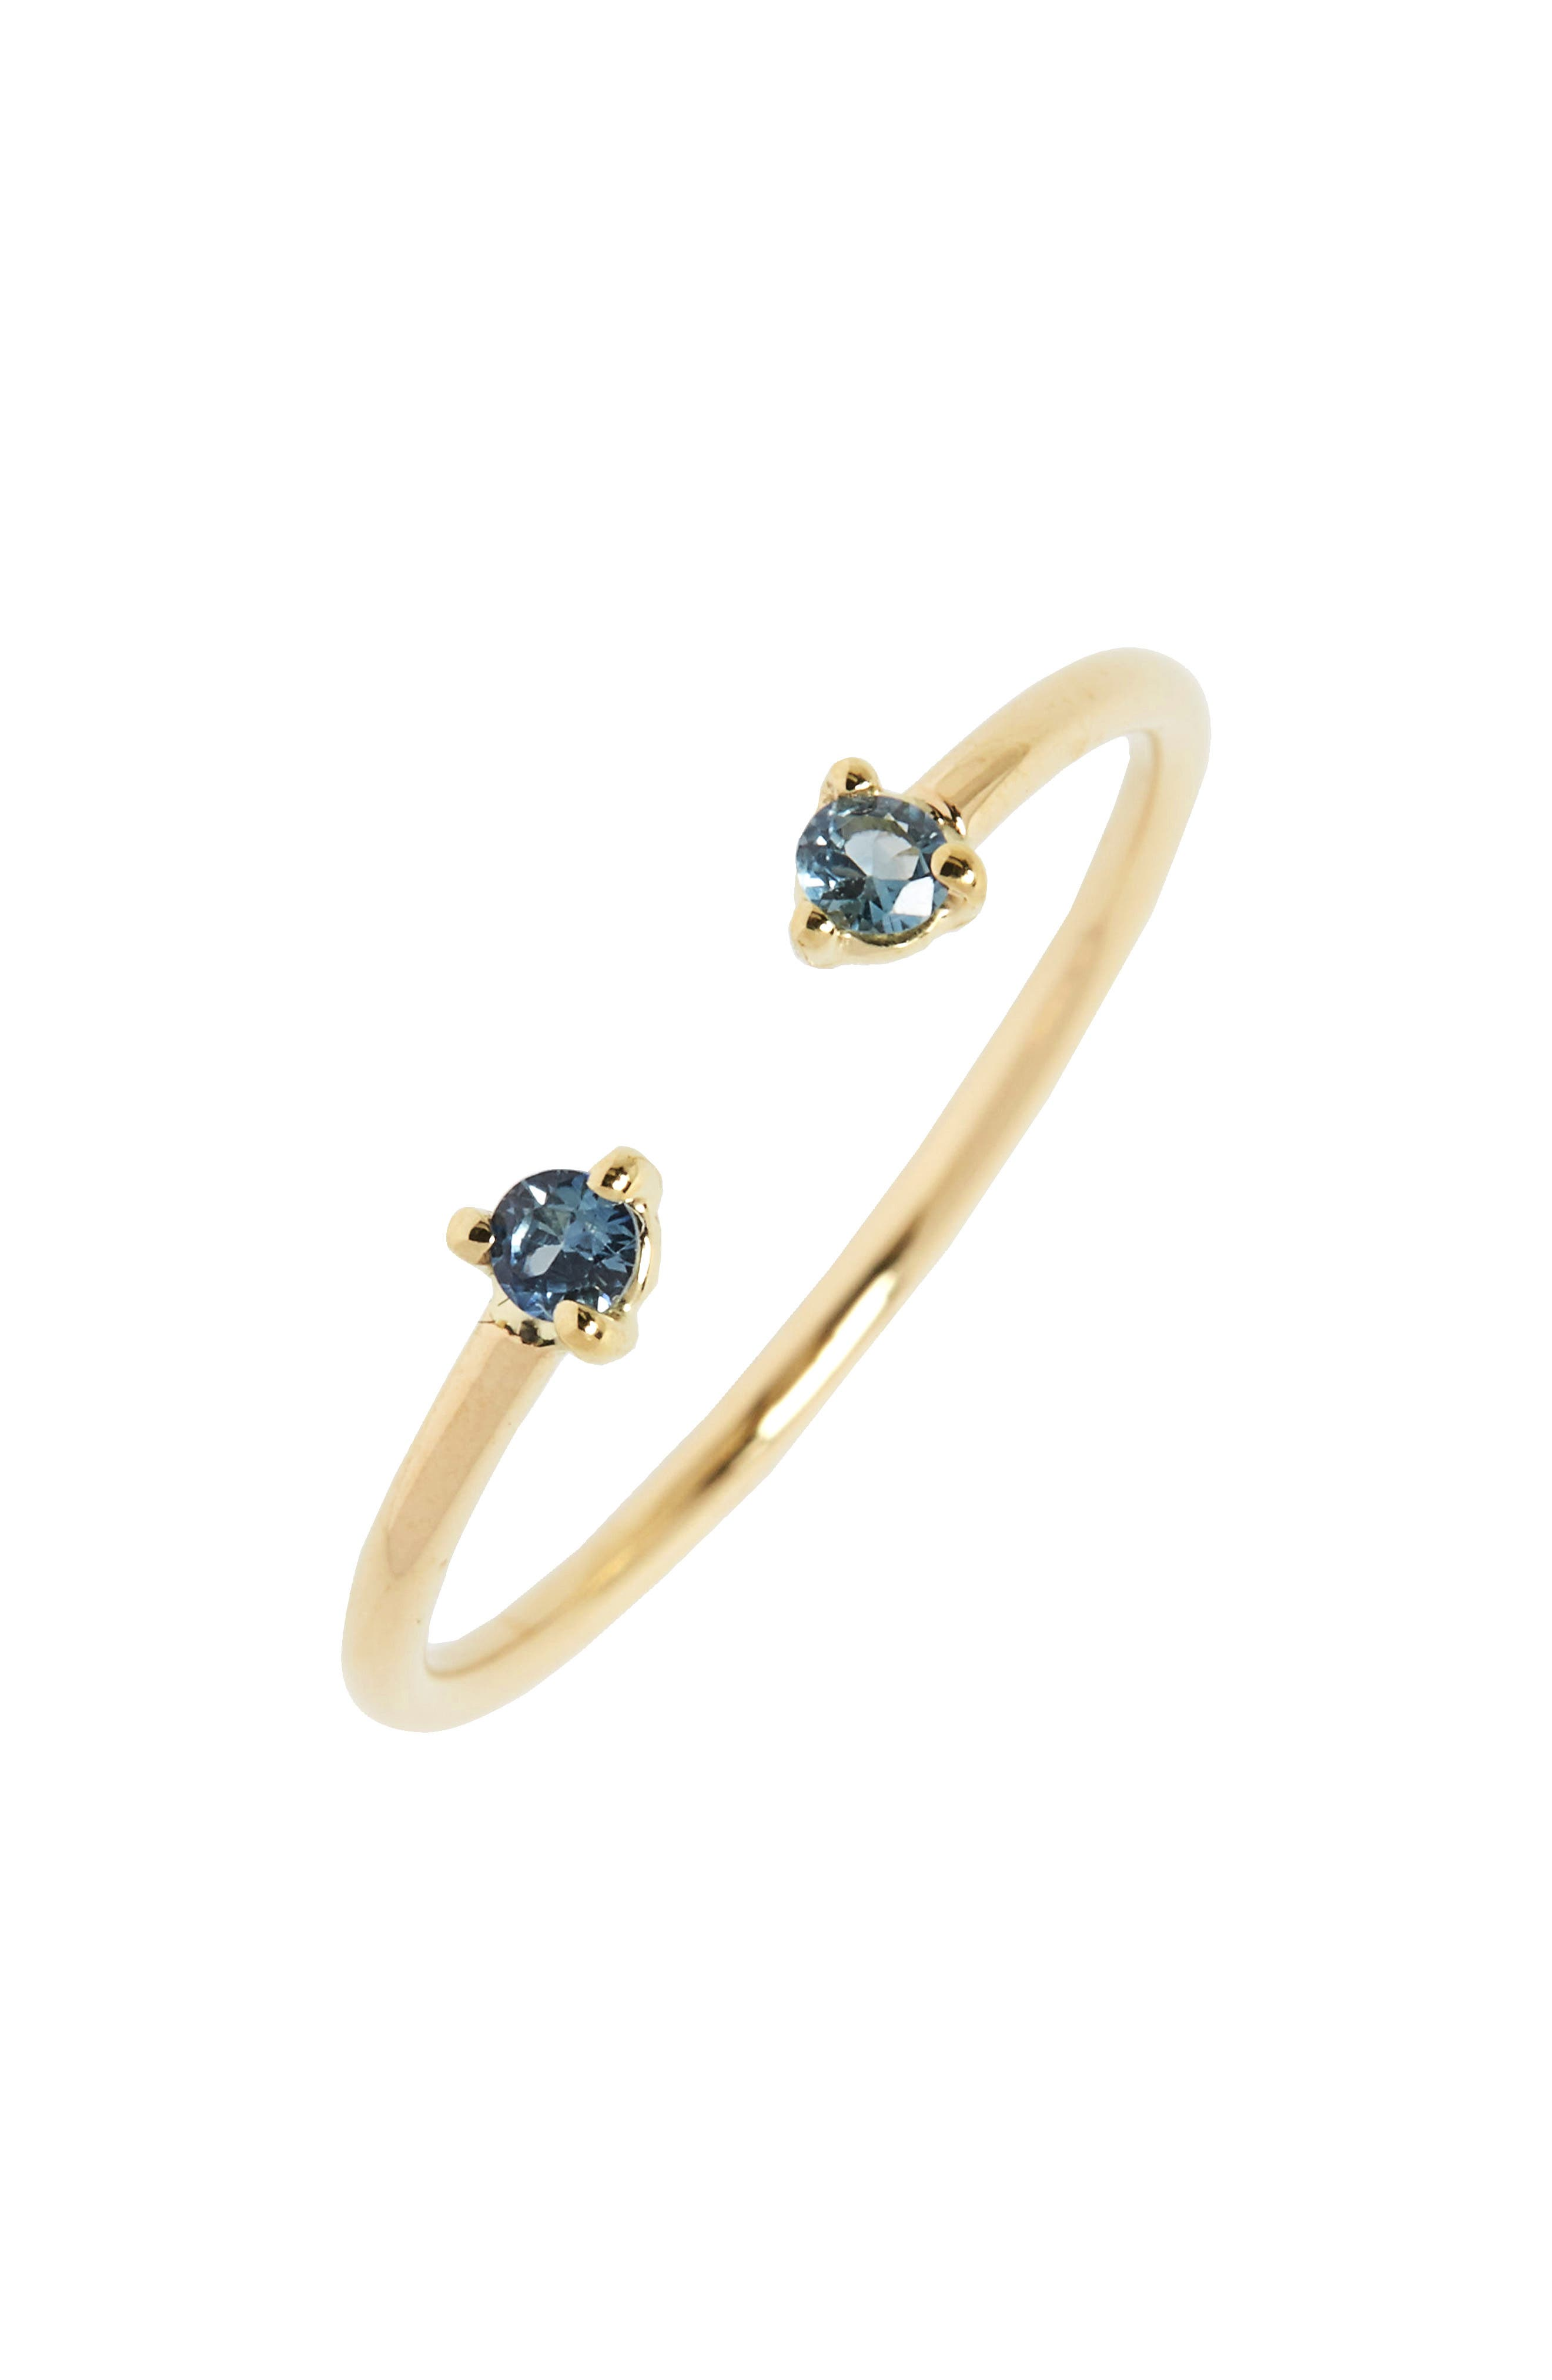 Counting Collection Two-Step Sapphire Ring,                             Main thumbnail 1, color,                             SAPPHIRE/ GOLD